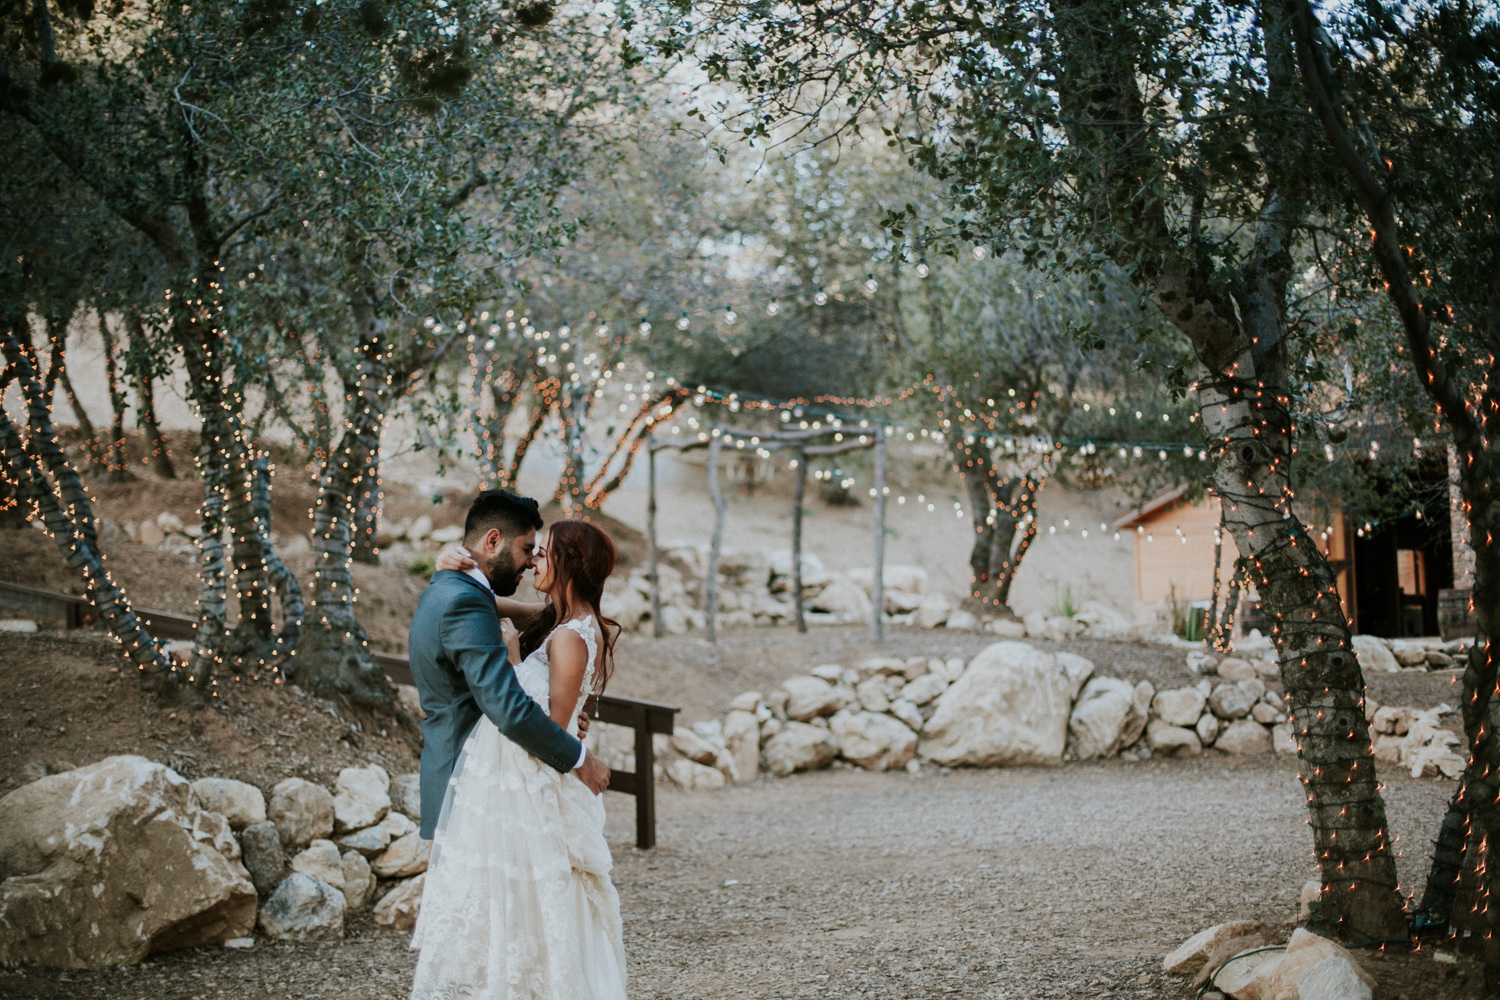 We love... - weddings - intimate, down-to-earth, diverse, meaningful, honest, relaxedstyles - retro, DIY, geek-chic, mid-century modern, bohemian, alternativedetails - ring-bearer dogs, vintage getaway cars, lace dresses, bow-tieslocations - the desert, the woods, urban, art-deco, art galleries, warehousesbucketlist- cat ring-bearer, Star Trek geek-chic, NHMLA dinosaur wedding, Yosemite, Disneyland Haunted Mansion wedding